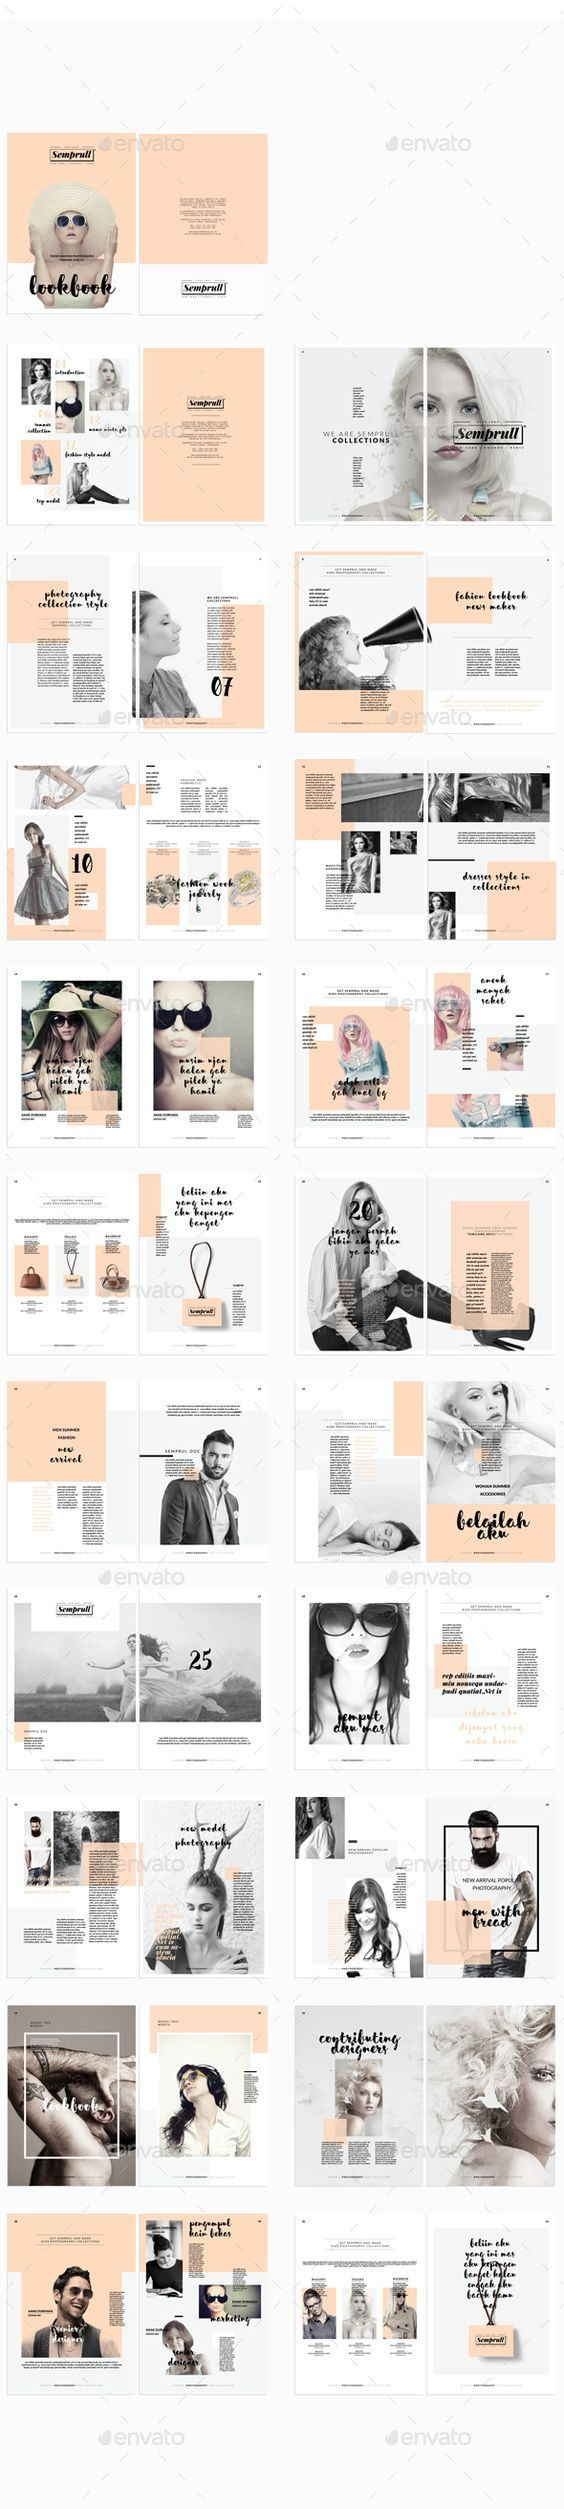 Lookbook | Templates, Layouts and Design